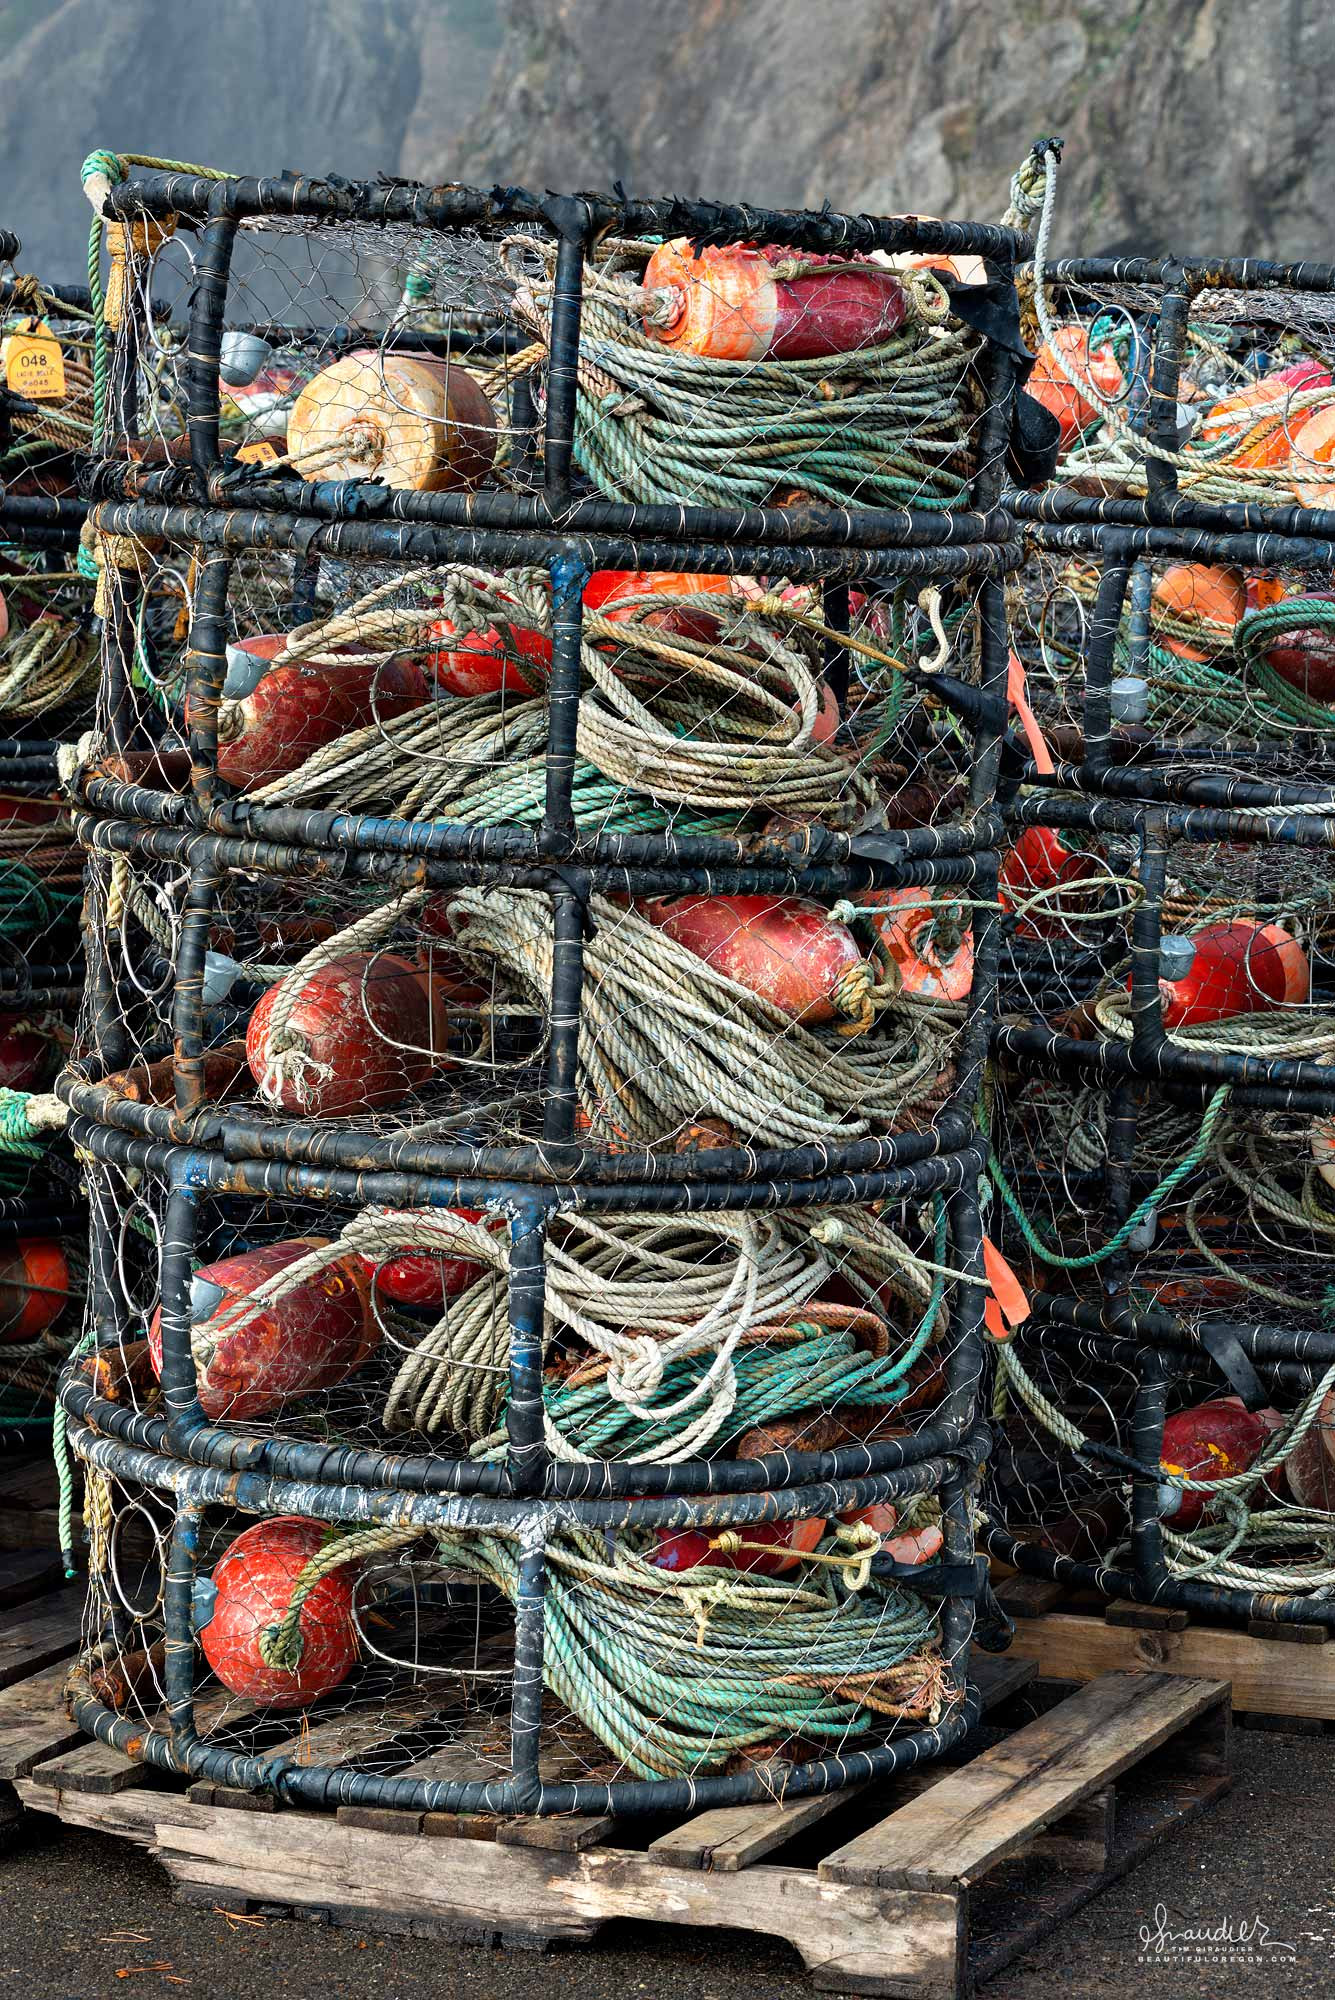 Crab pots are stacked on pallets as fishermen wait for the opening of Oregon's lucrative Dungeness Crab season. Port Orford, Curry County, South Oregon Coast.